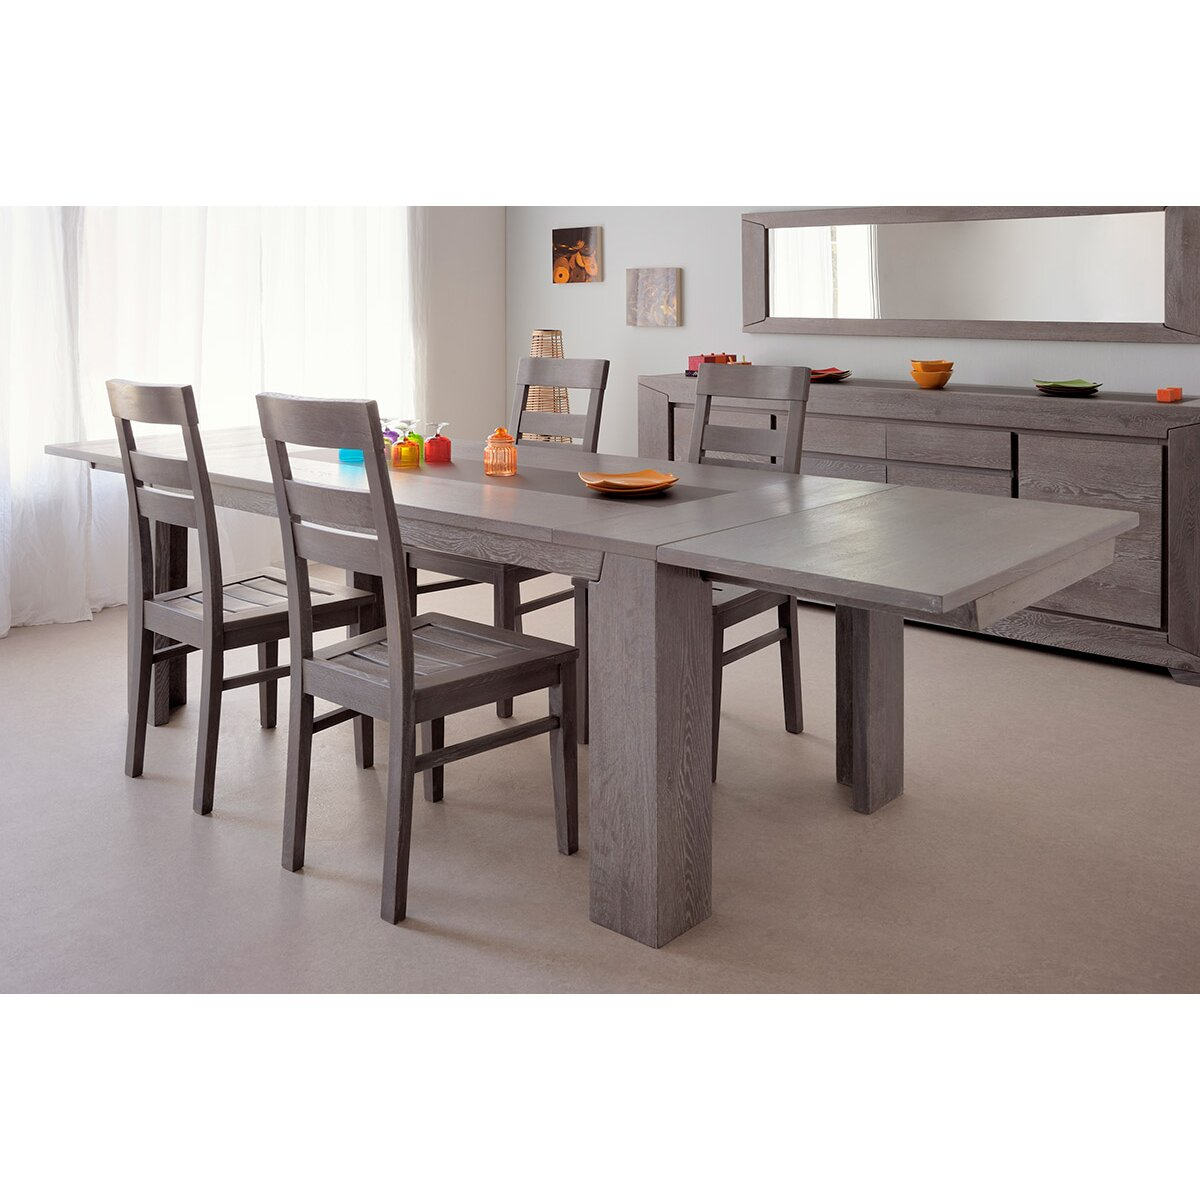 Parisot Titan Extendable Dining Table & Reviews | Wayfair